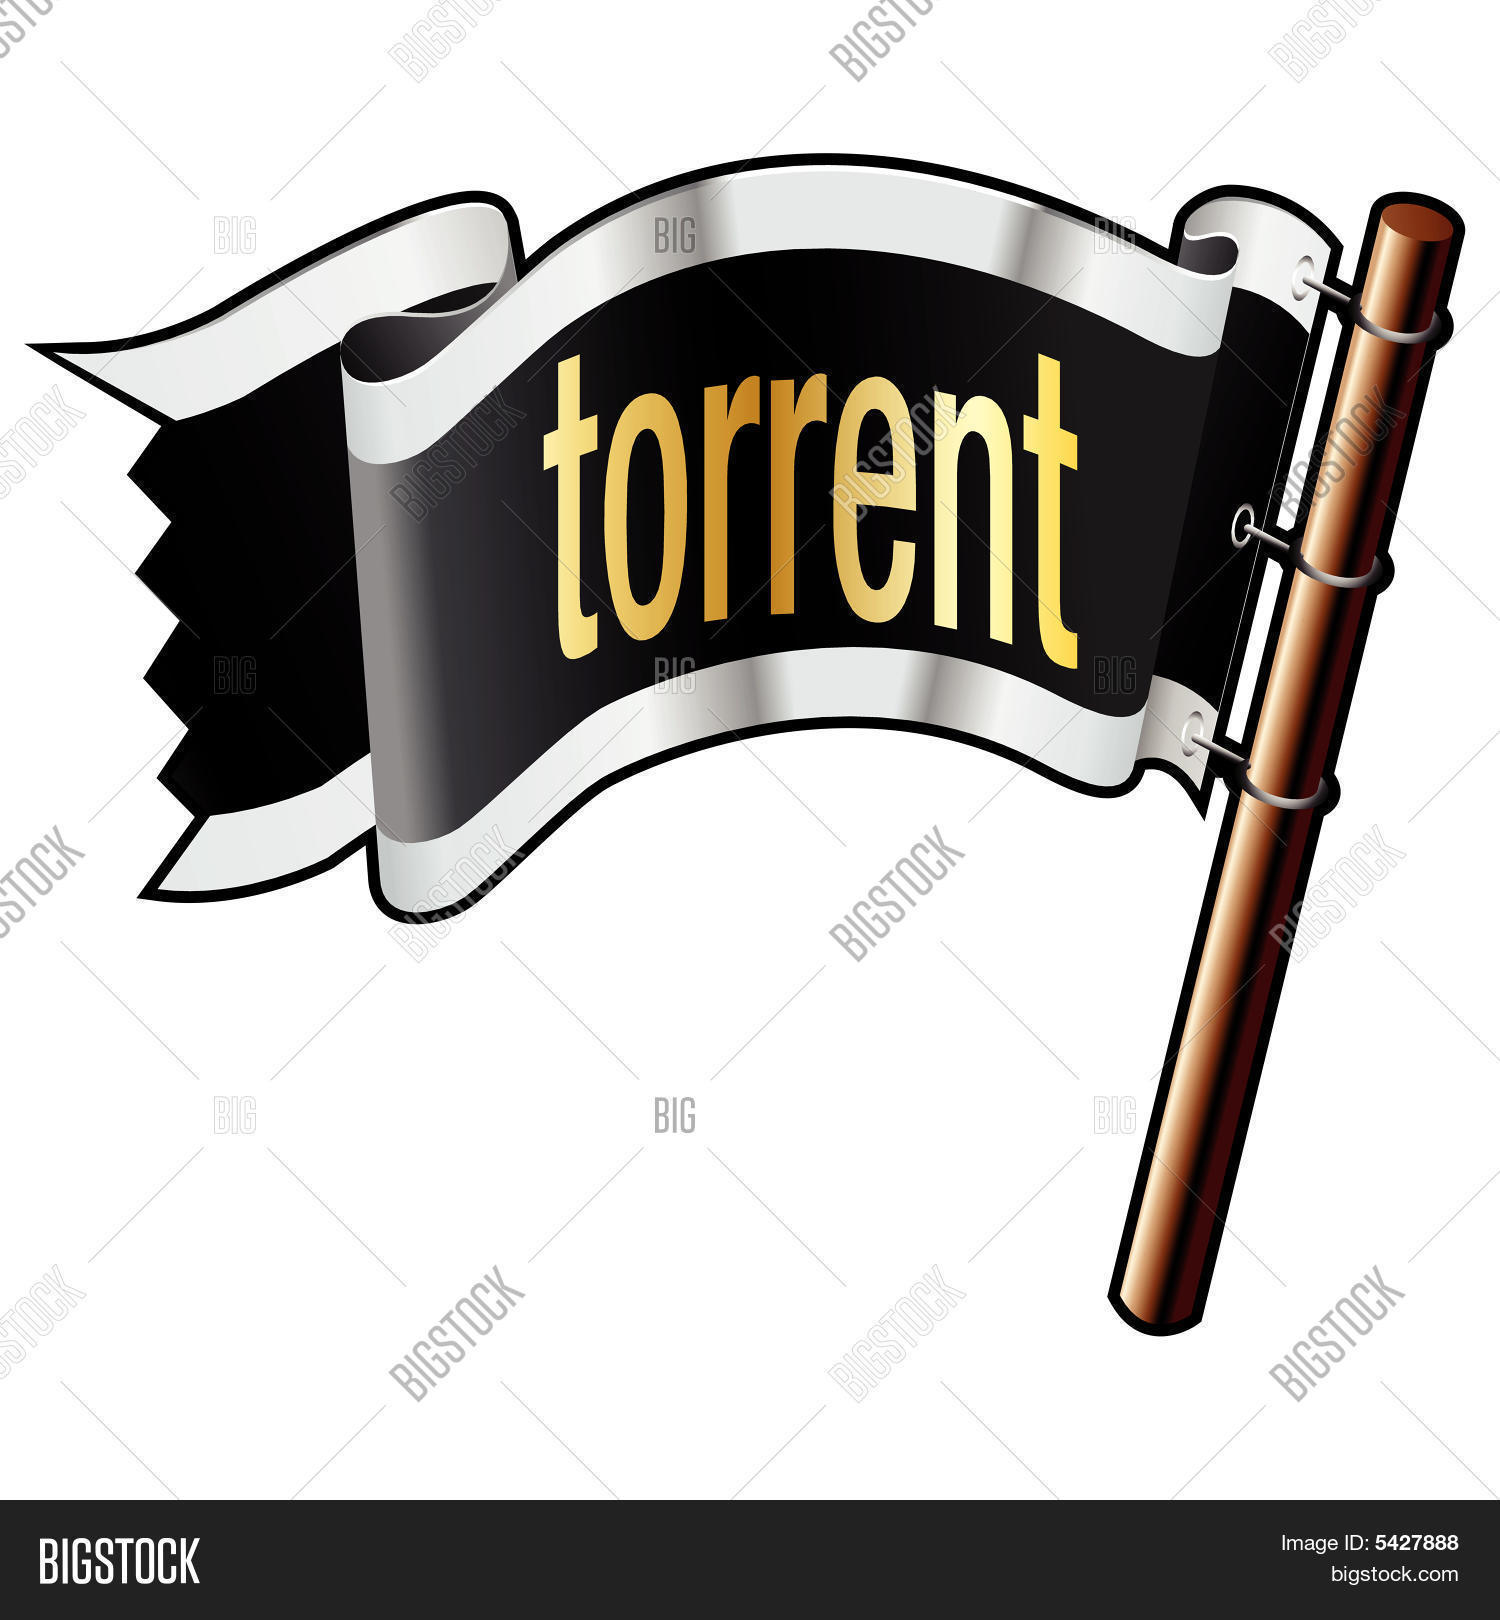 torrent icon on vector photo free trial bigstock rh bigstockphoto com 8 Ball Vector Torrent 8 Ball Vector Torrent